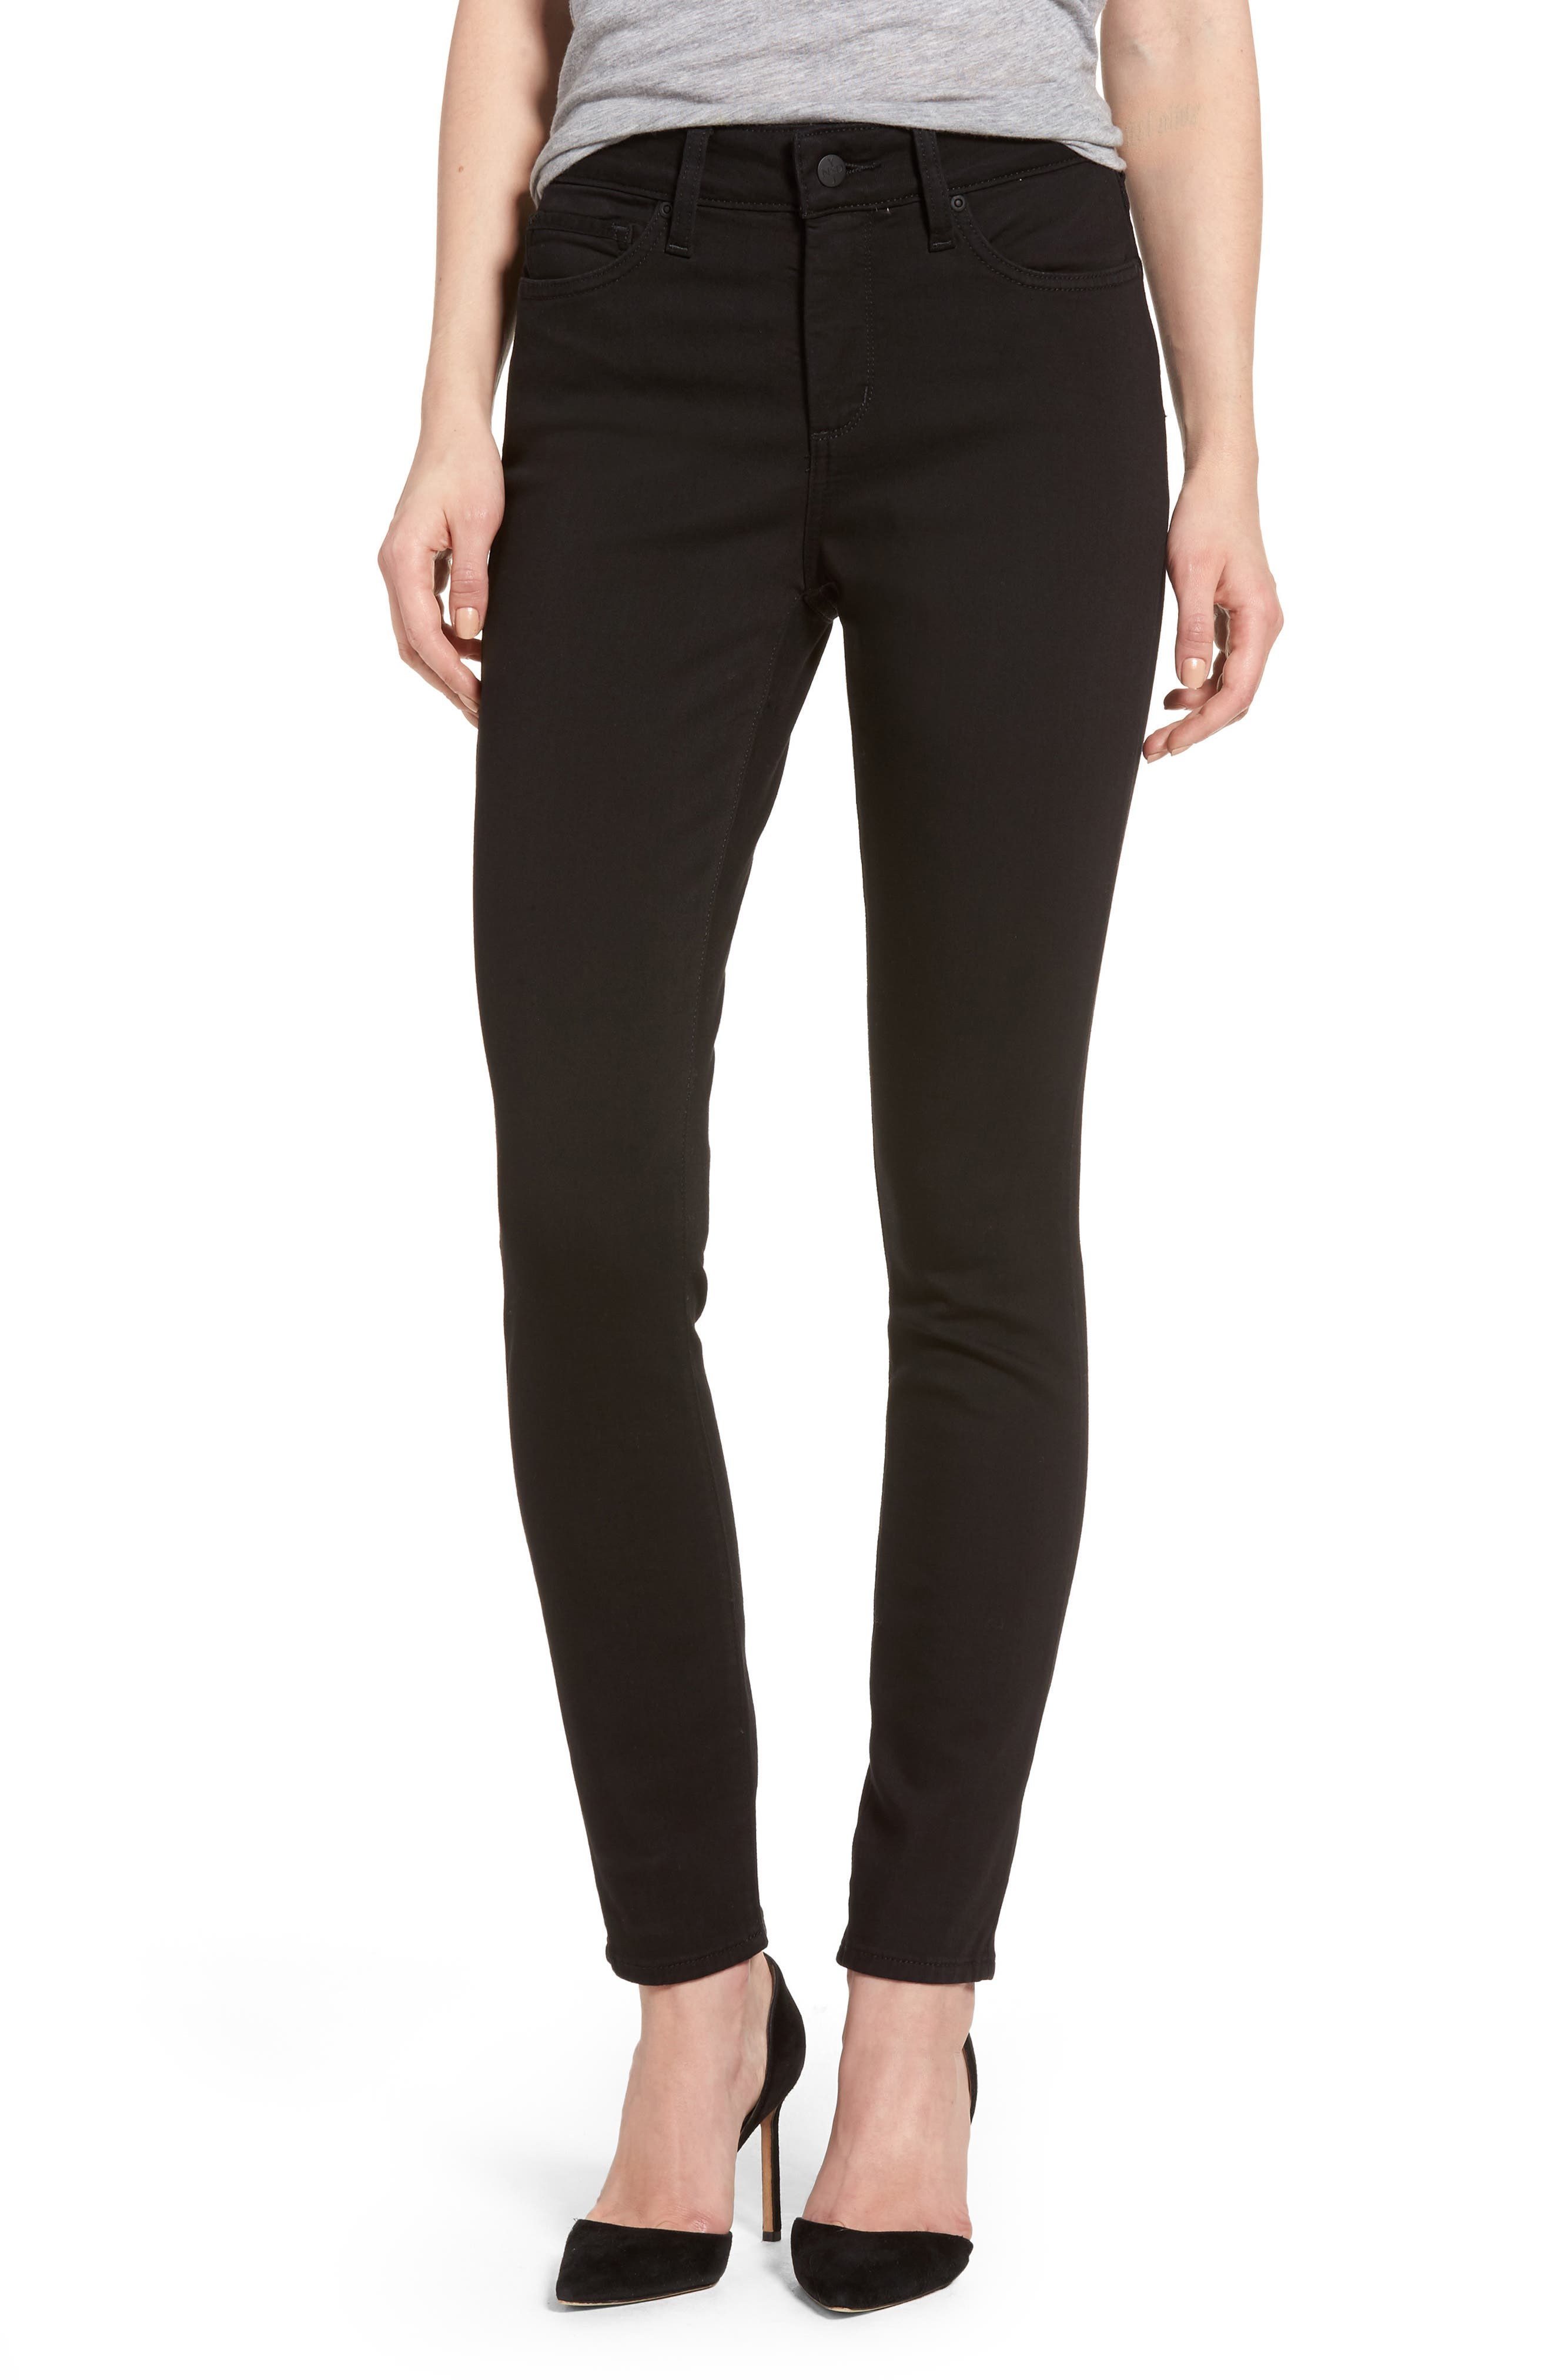 Ami Stretch Skinny Jeans,                         Main,                         color, Black